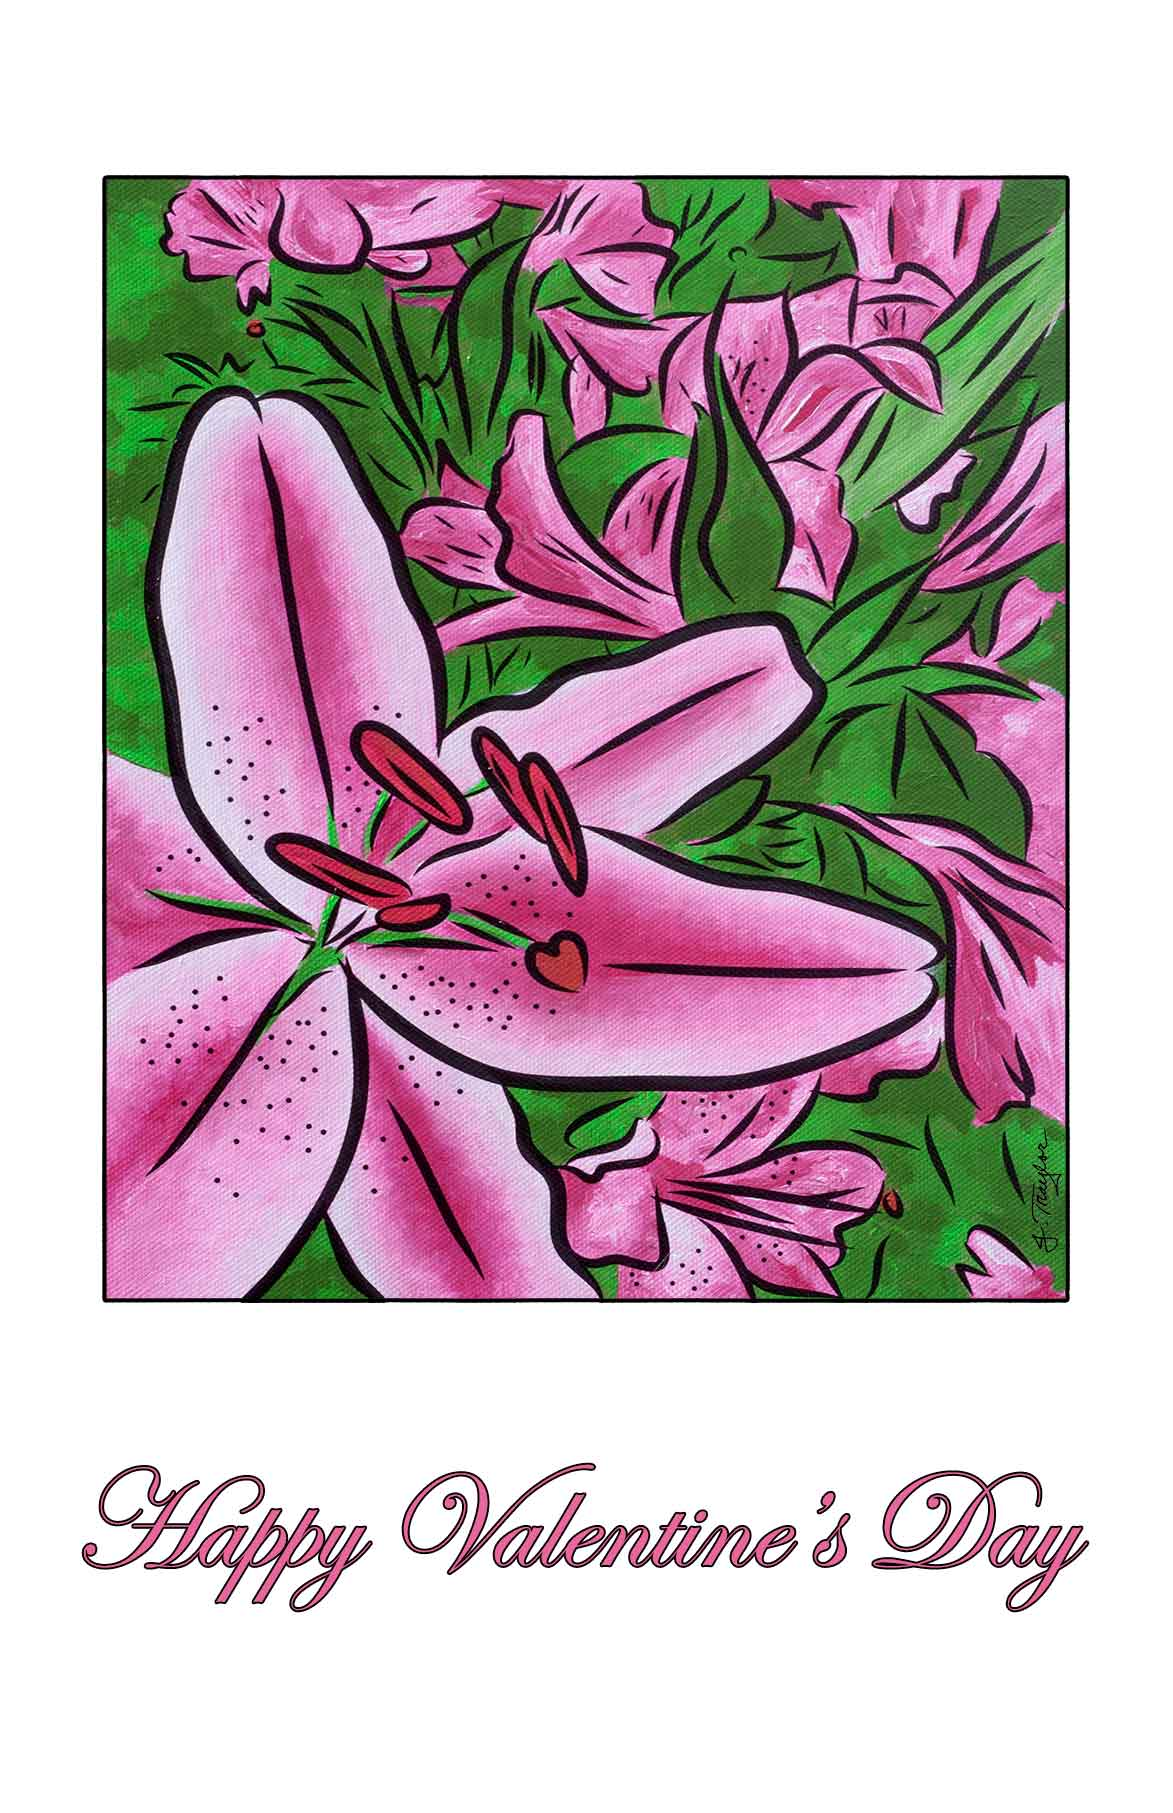 Happy Valentines Day! - free greeting card to download and print 1